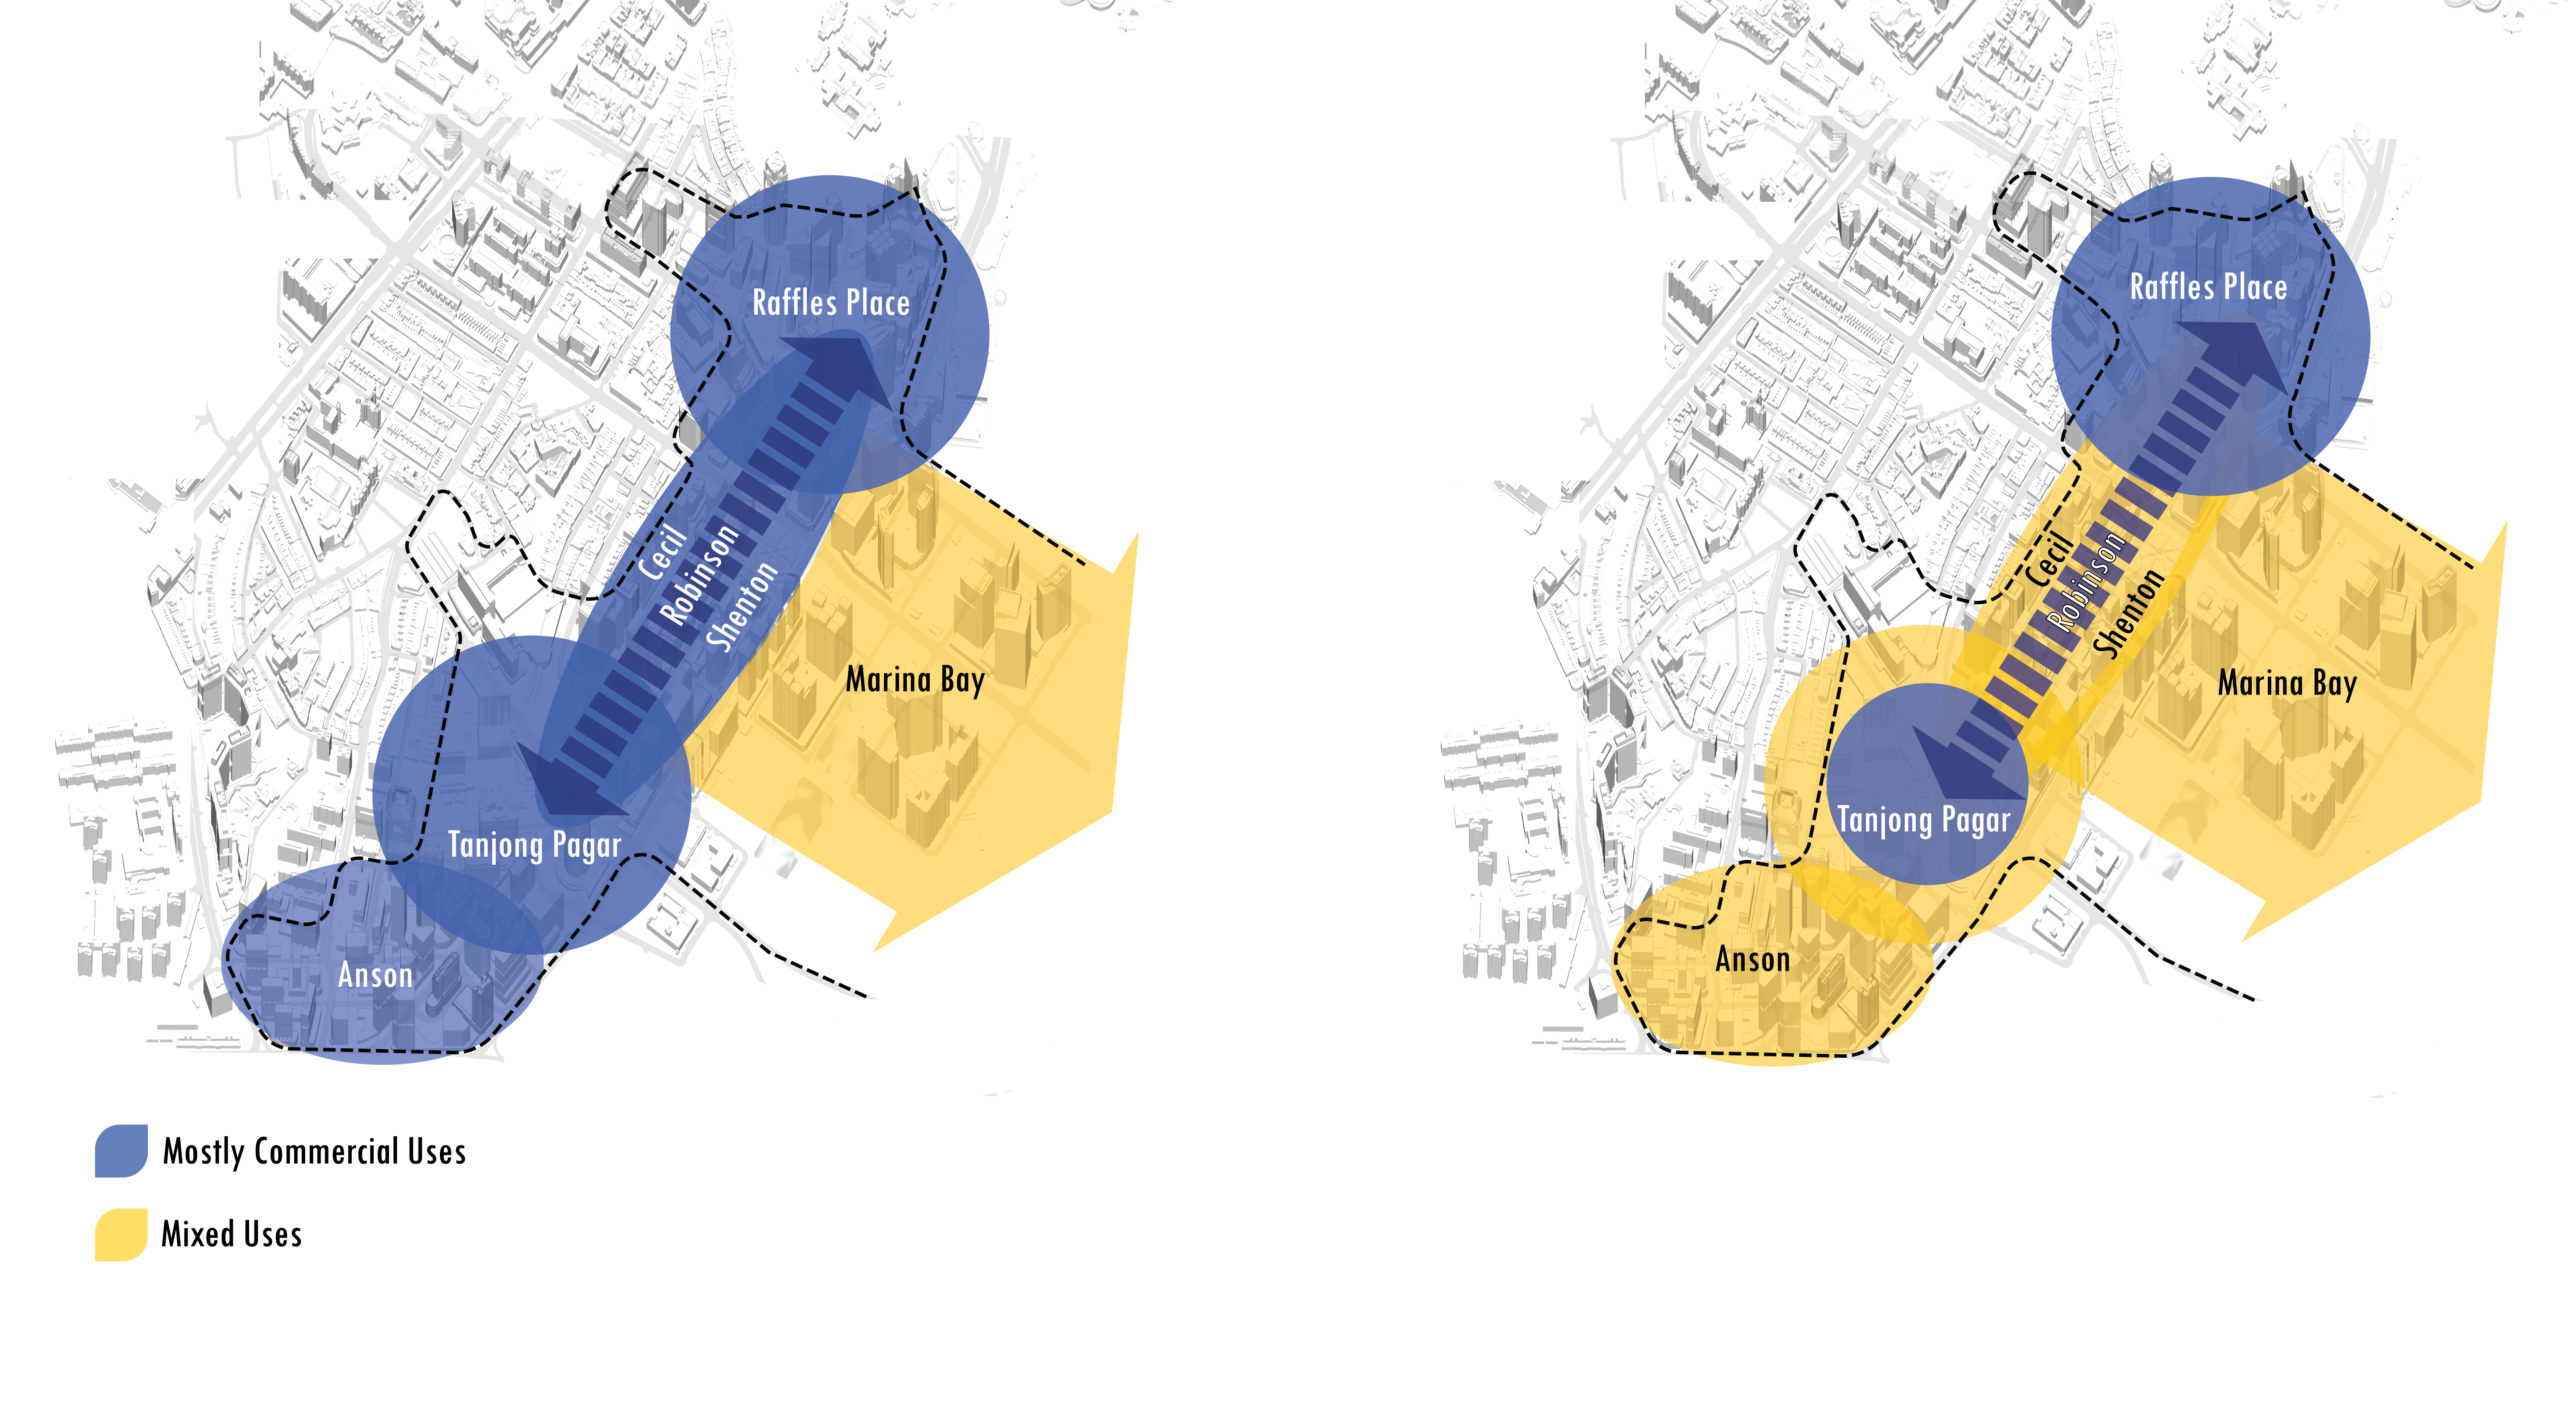 sky-everton-Incentives-for-developers-building-owners-to-transform-city-centre-build-more-homes-ura-picture2